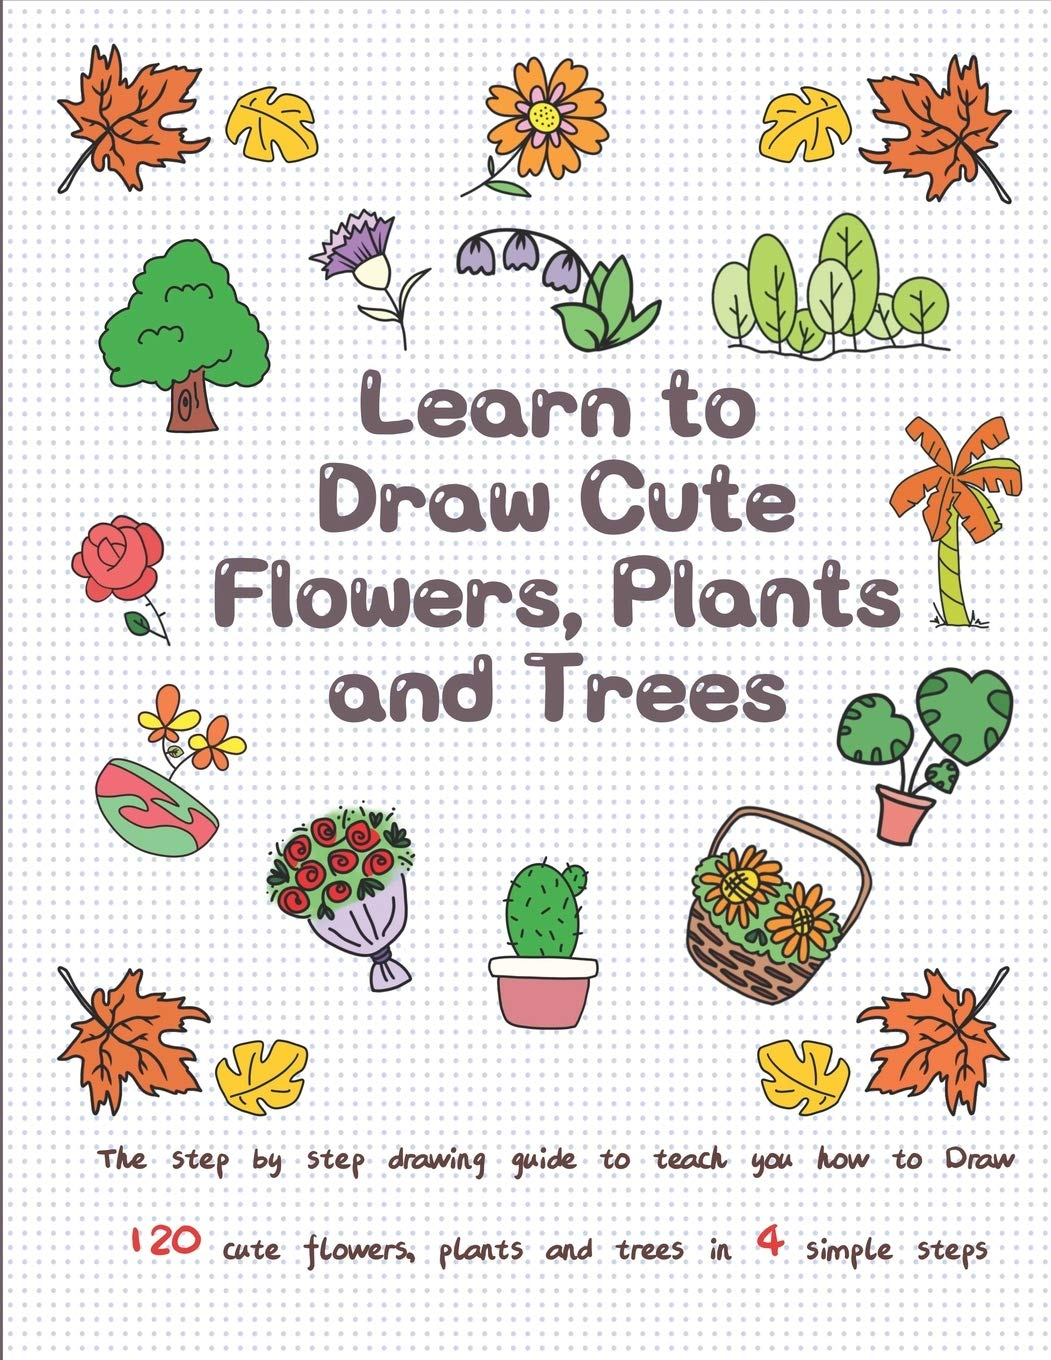 Learn To Draw Cute Flowers Plants And Trees The Step By Step Drawing Guide To Teach You How To Draw 120 Cute Flowers Plants And Trees In 4 Simple Steps T Jay